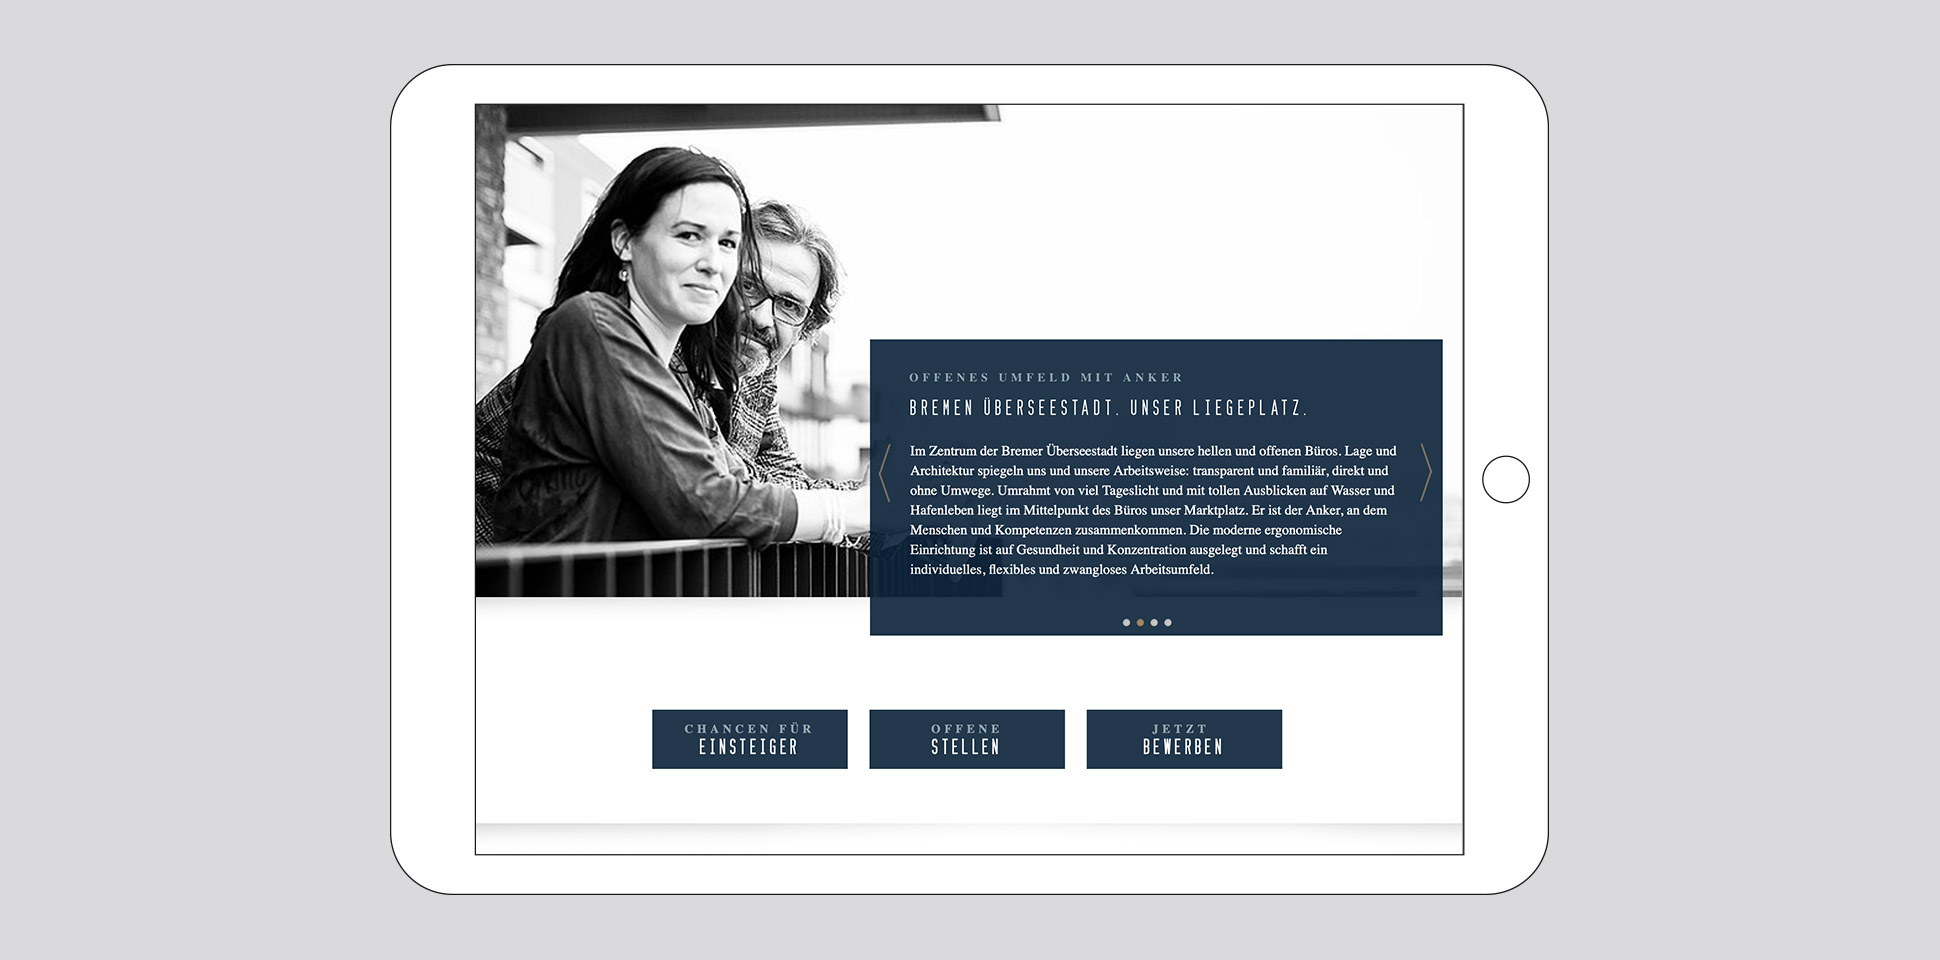 schomburg-rother-schumacher website tablet standort polarwerk